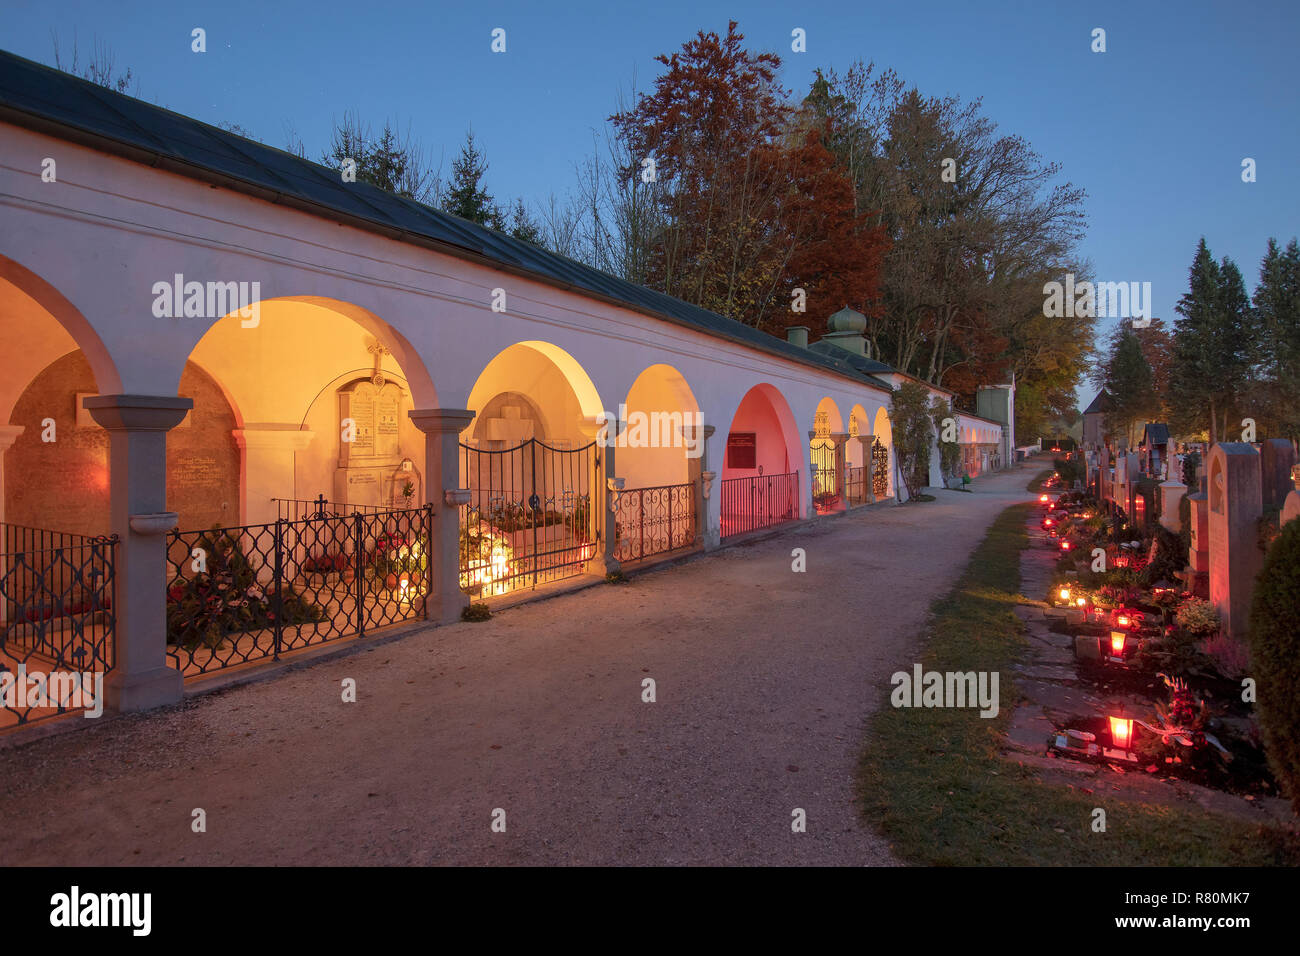 Cemetery in the village Teisendorf at All Saints Day with candles placed to honor deceased relatives. Upper Bavaria, Germany - Stock Image